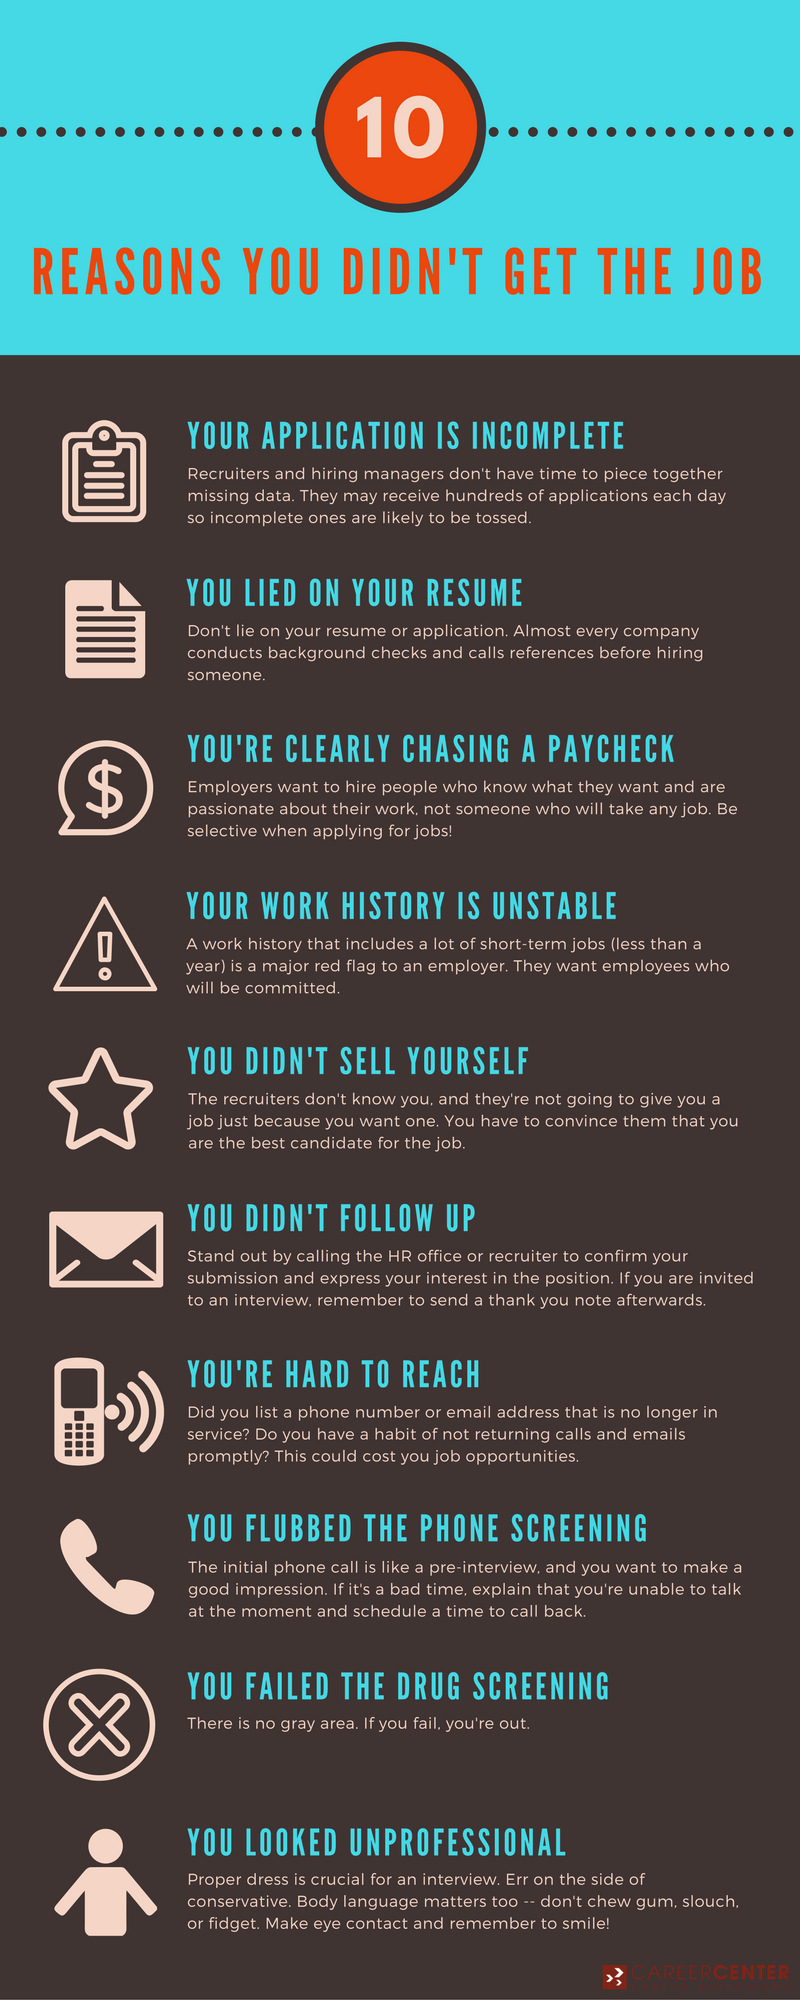 10-reasons-you-didnt-get-the-job-v2